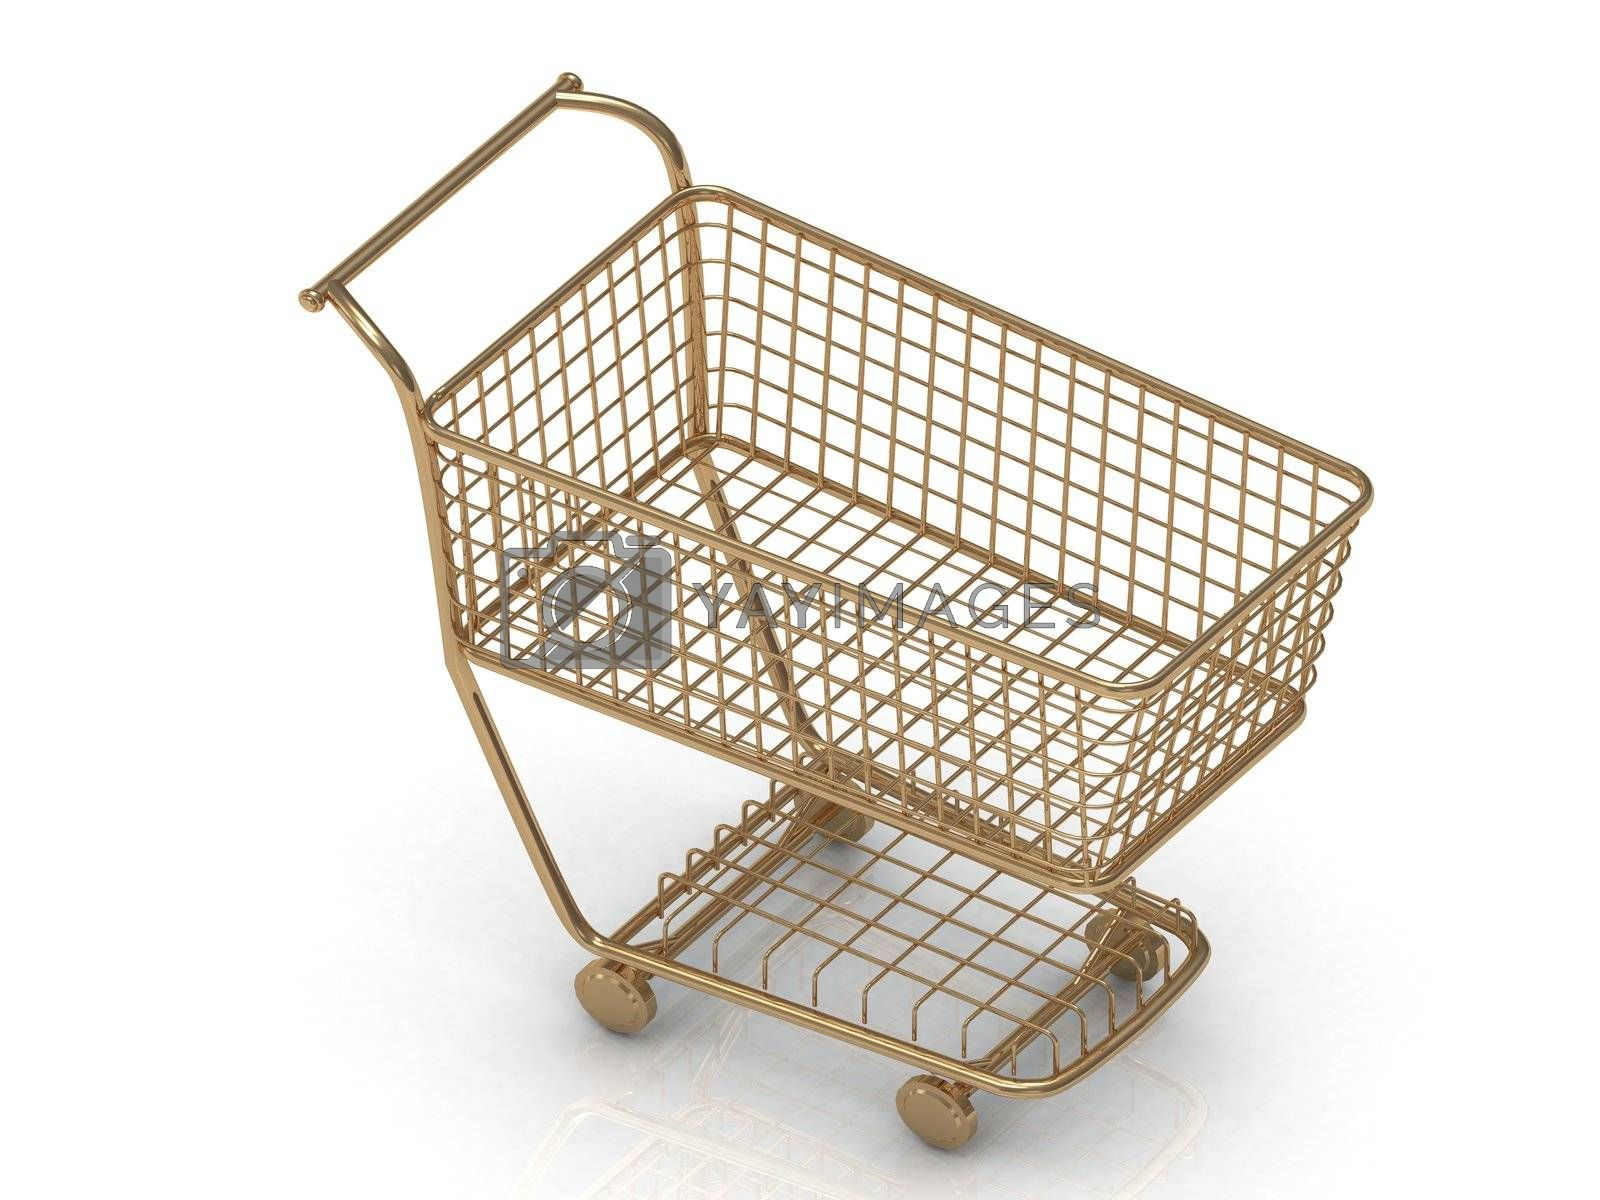 Gold shopping trolley (basket) in high definition isolated on a white background